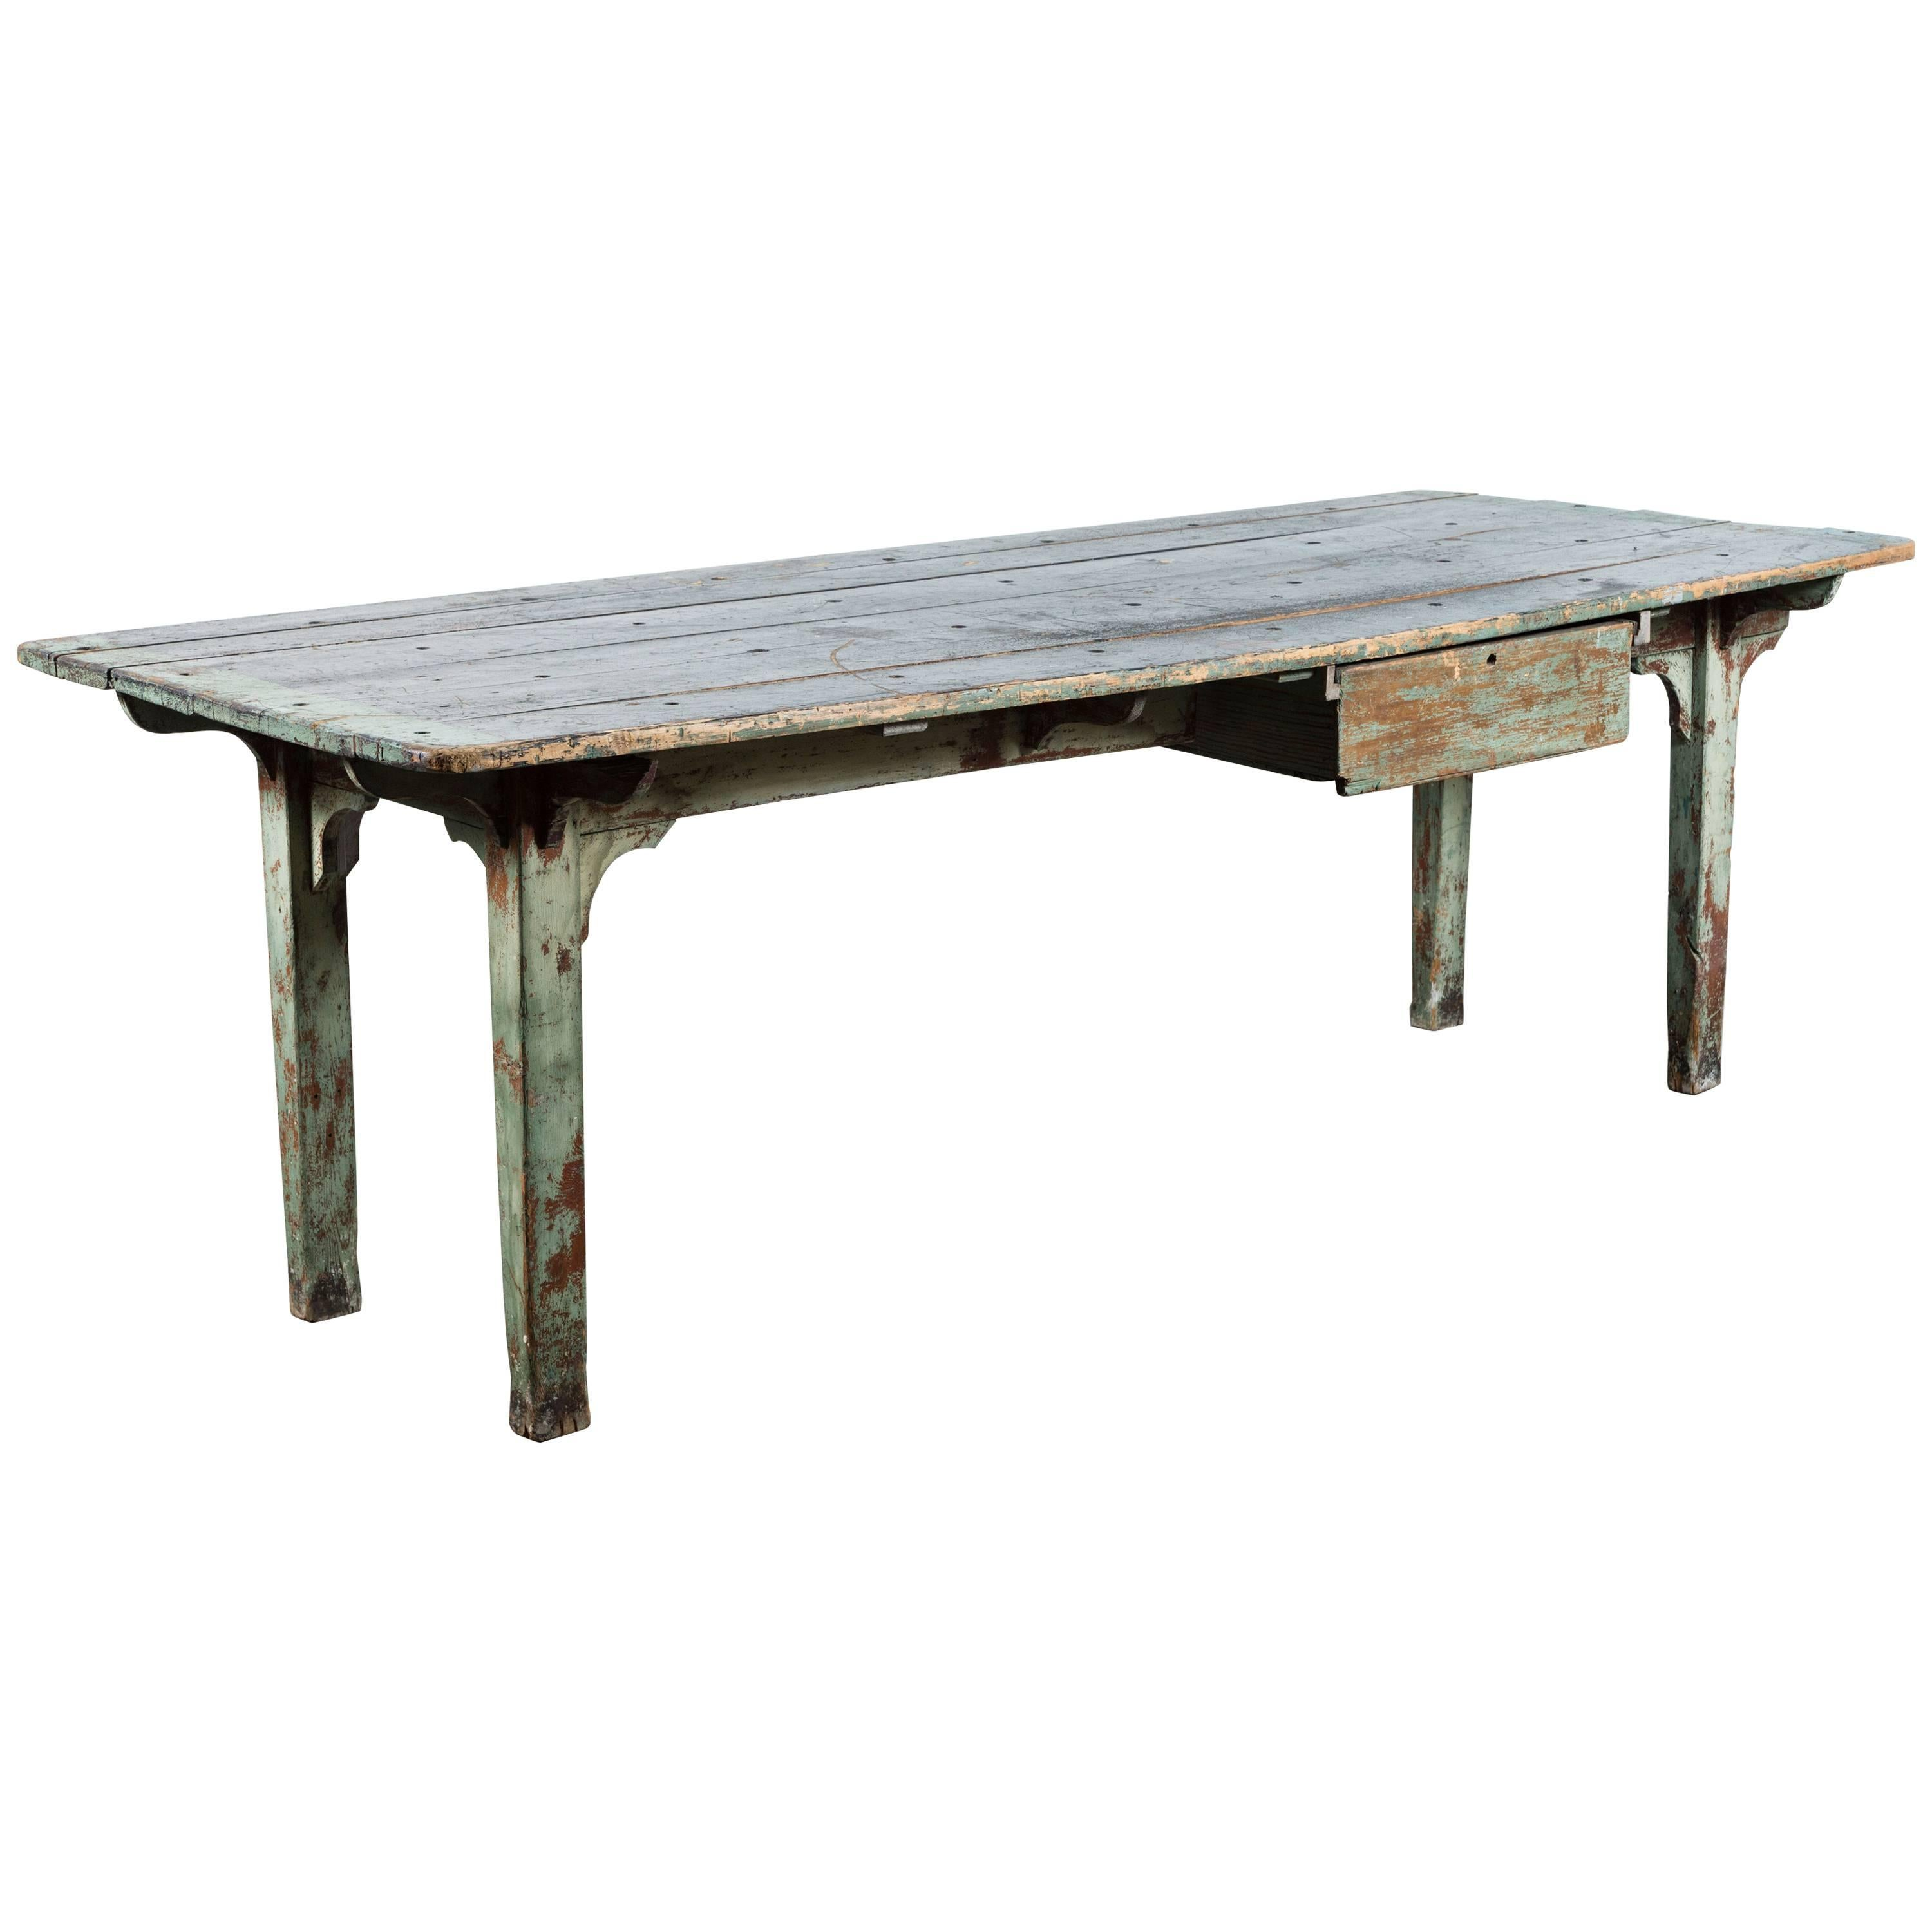 Vintage American General Store Counter Table with Drawer Original Paint Surface